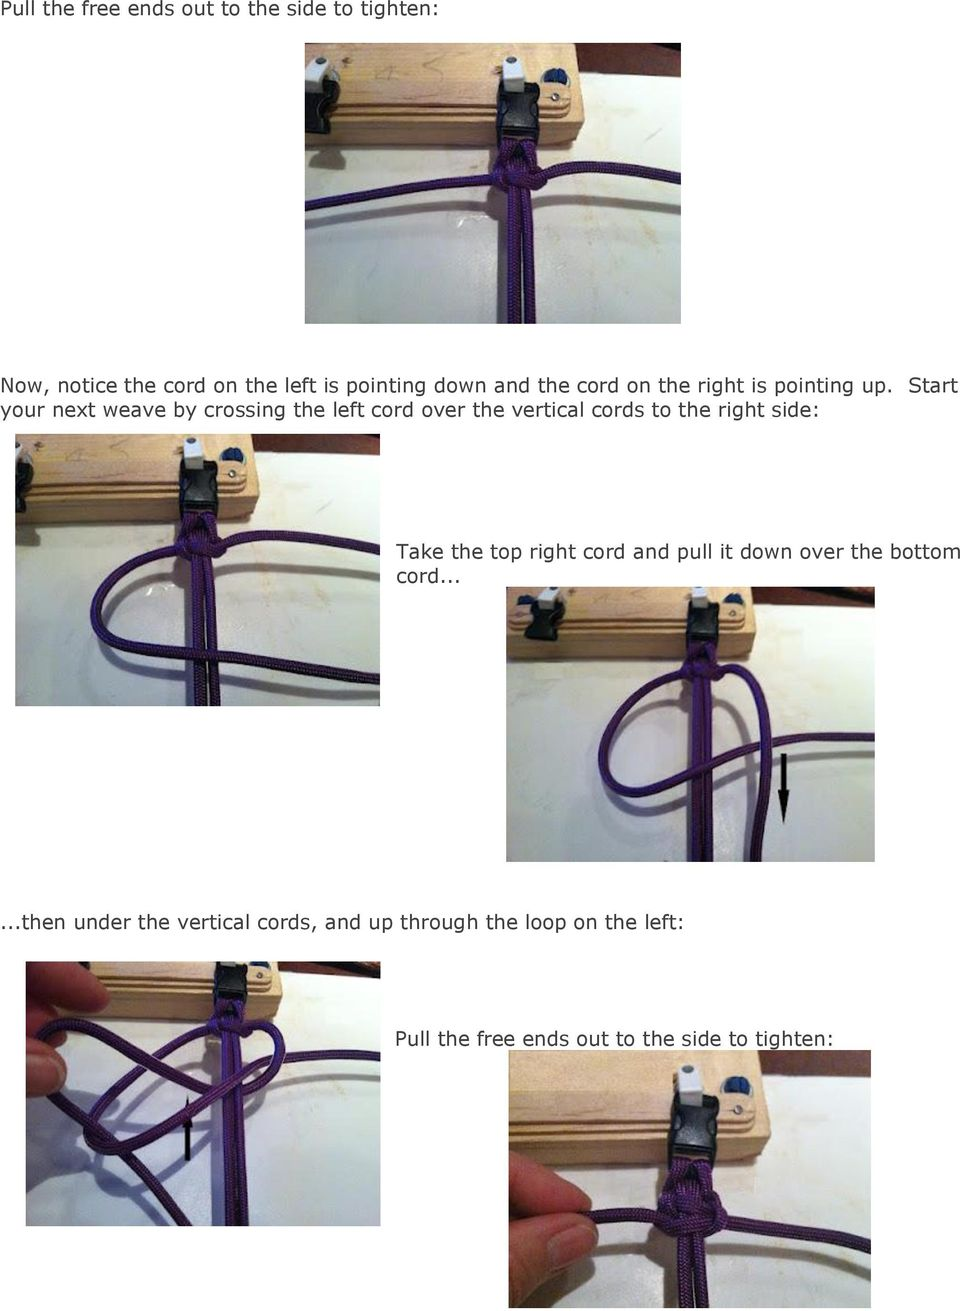 Start your next weave by crossing the left cord over the vertical cords to the right side: Take the